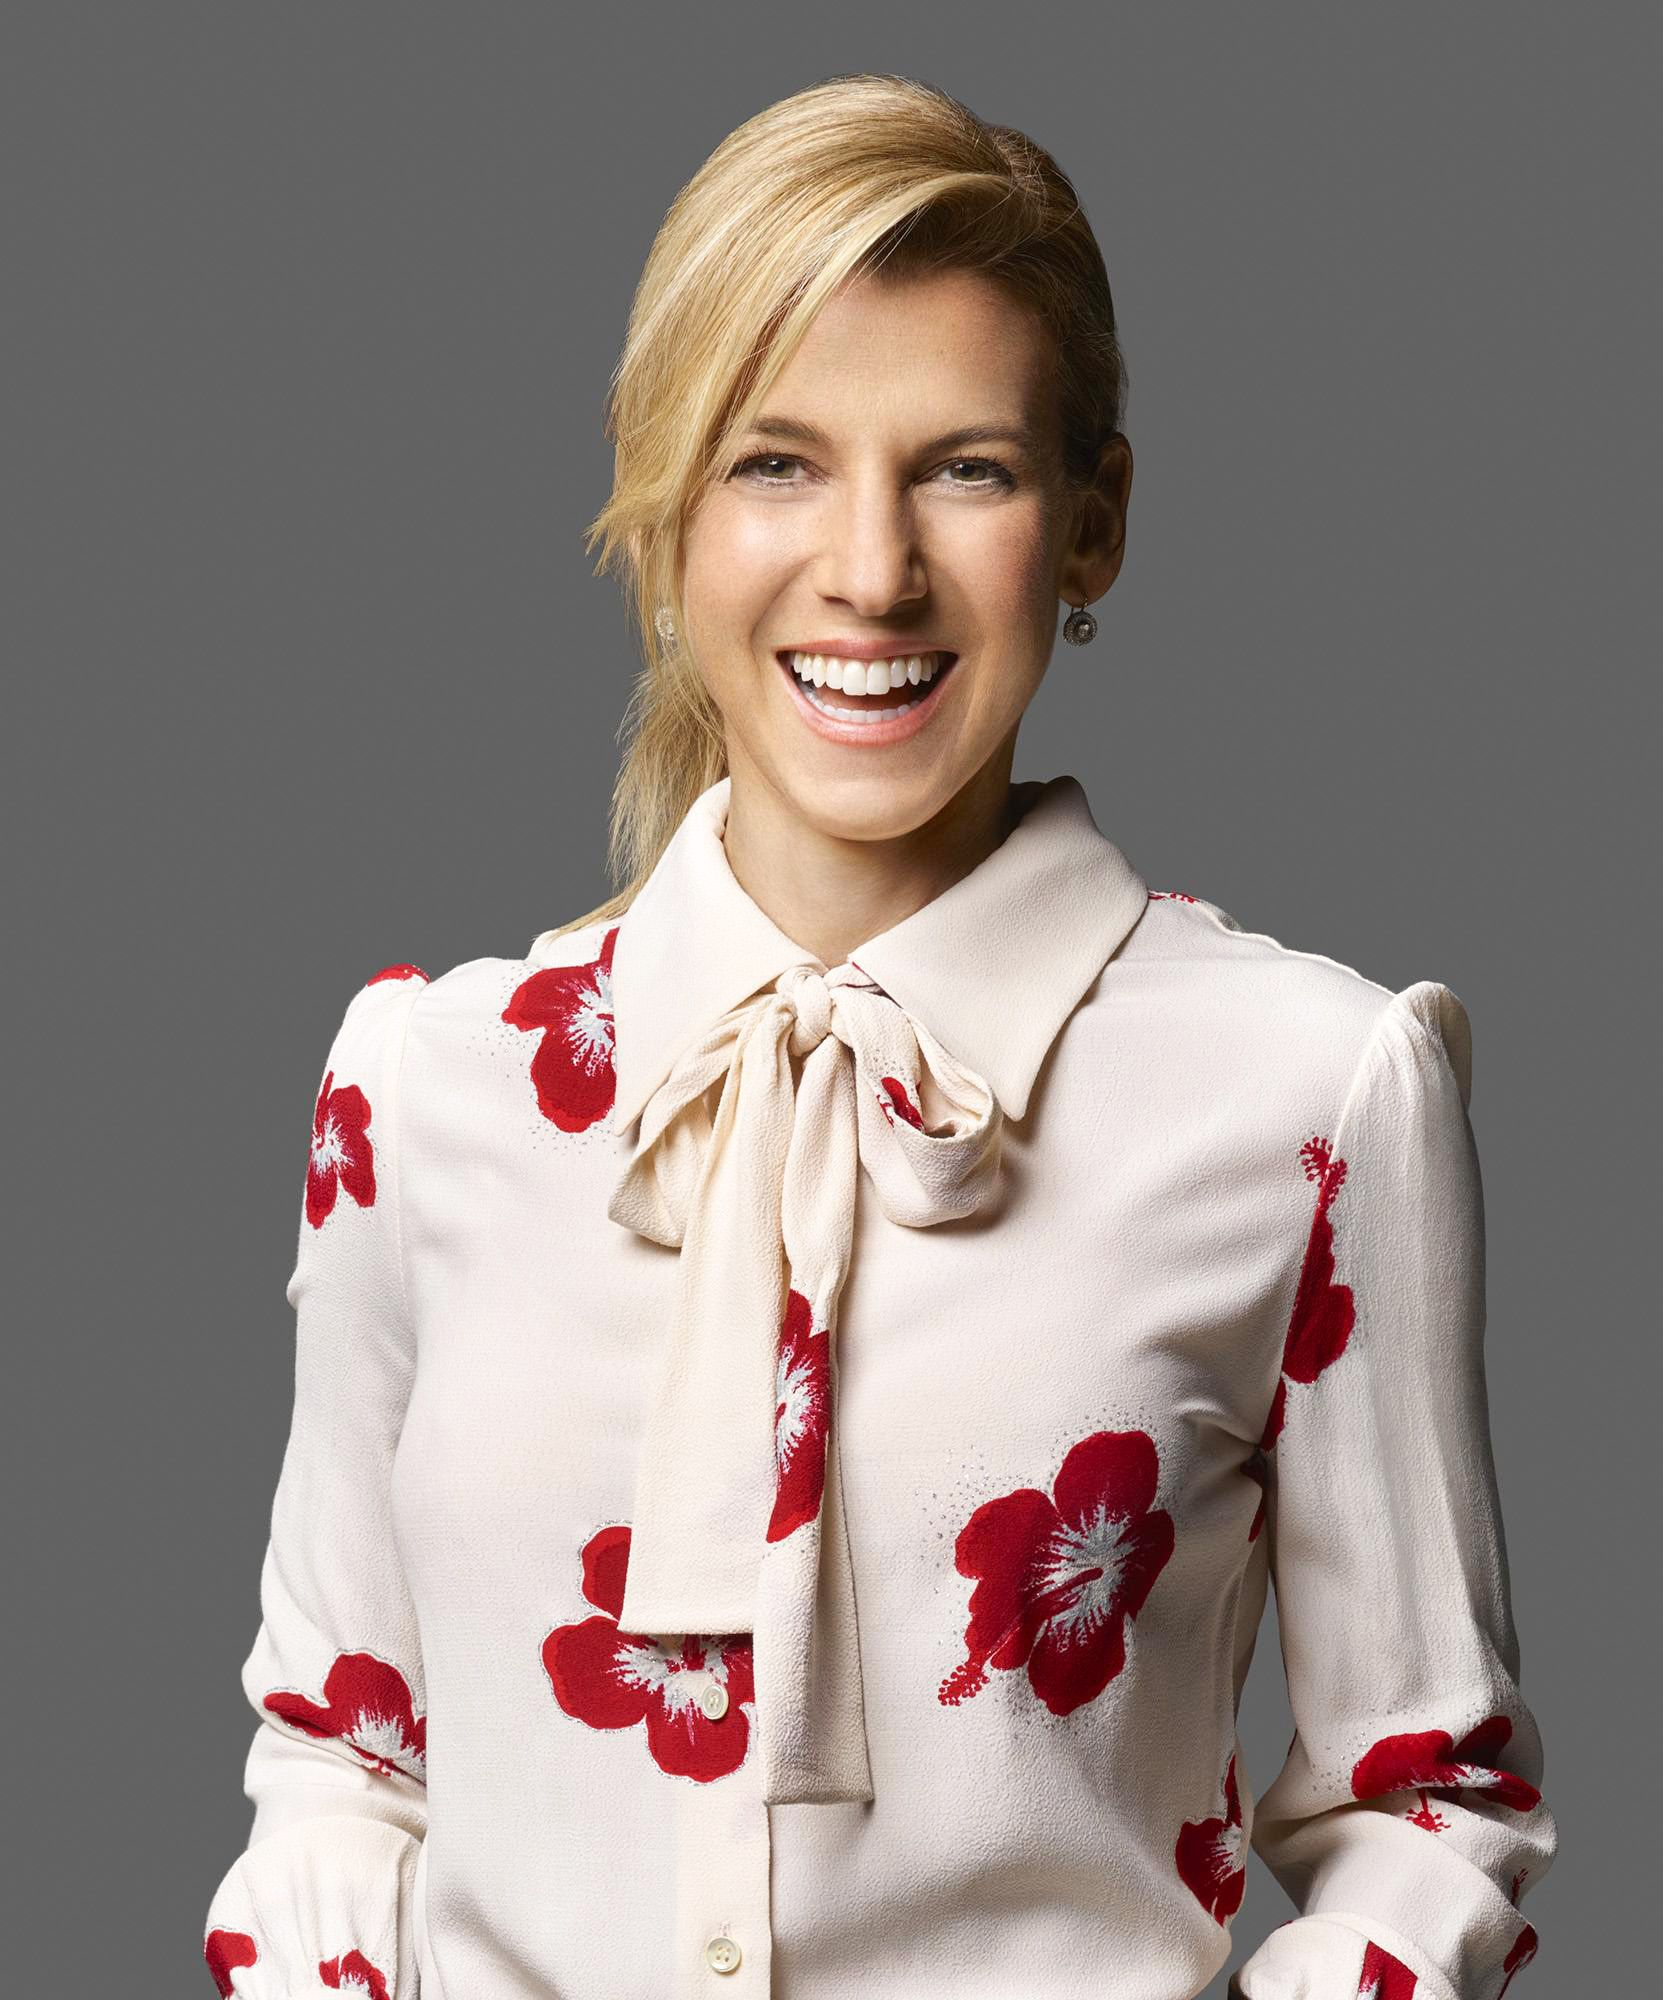 A Day In The Life Of Jessica Seinfeld Jessica Seinfeld